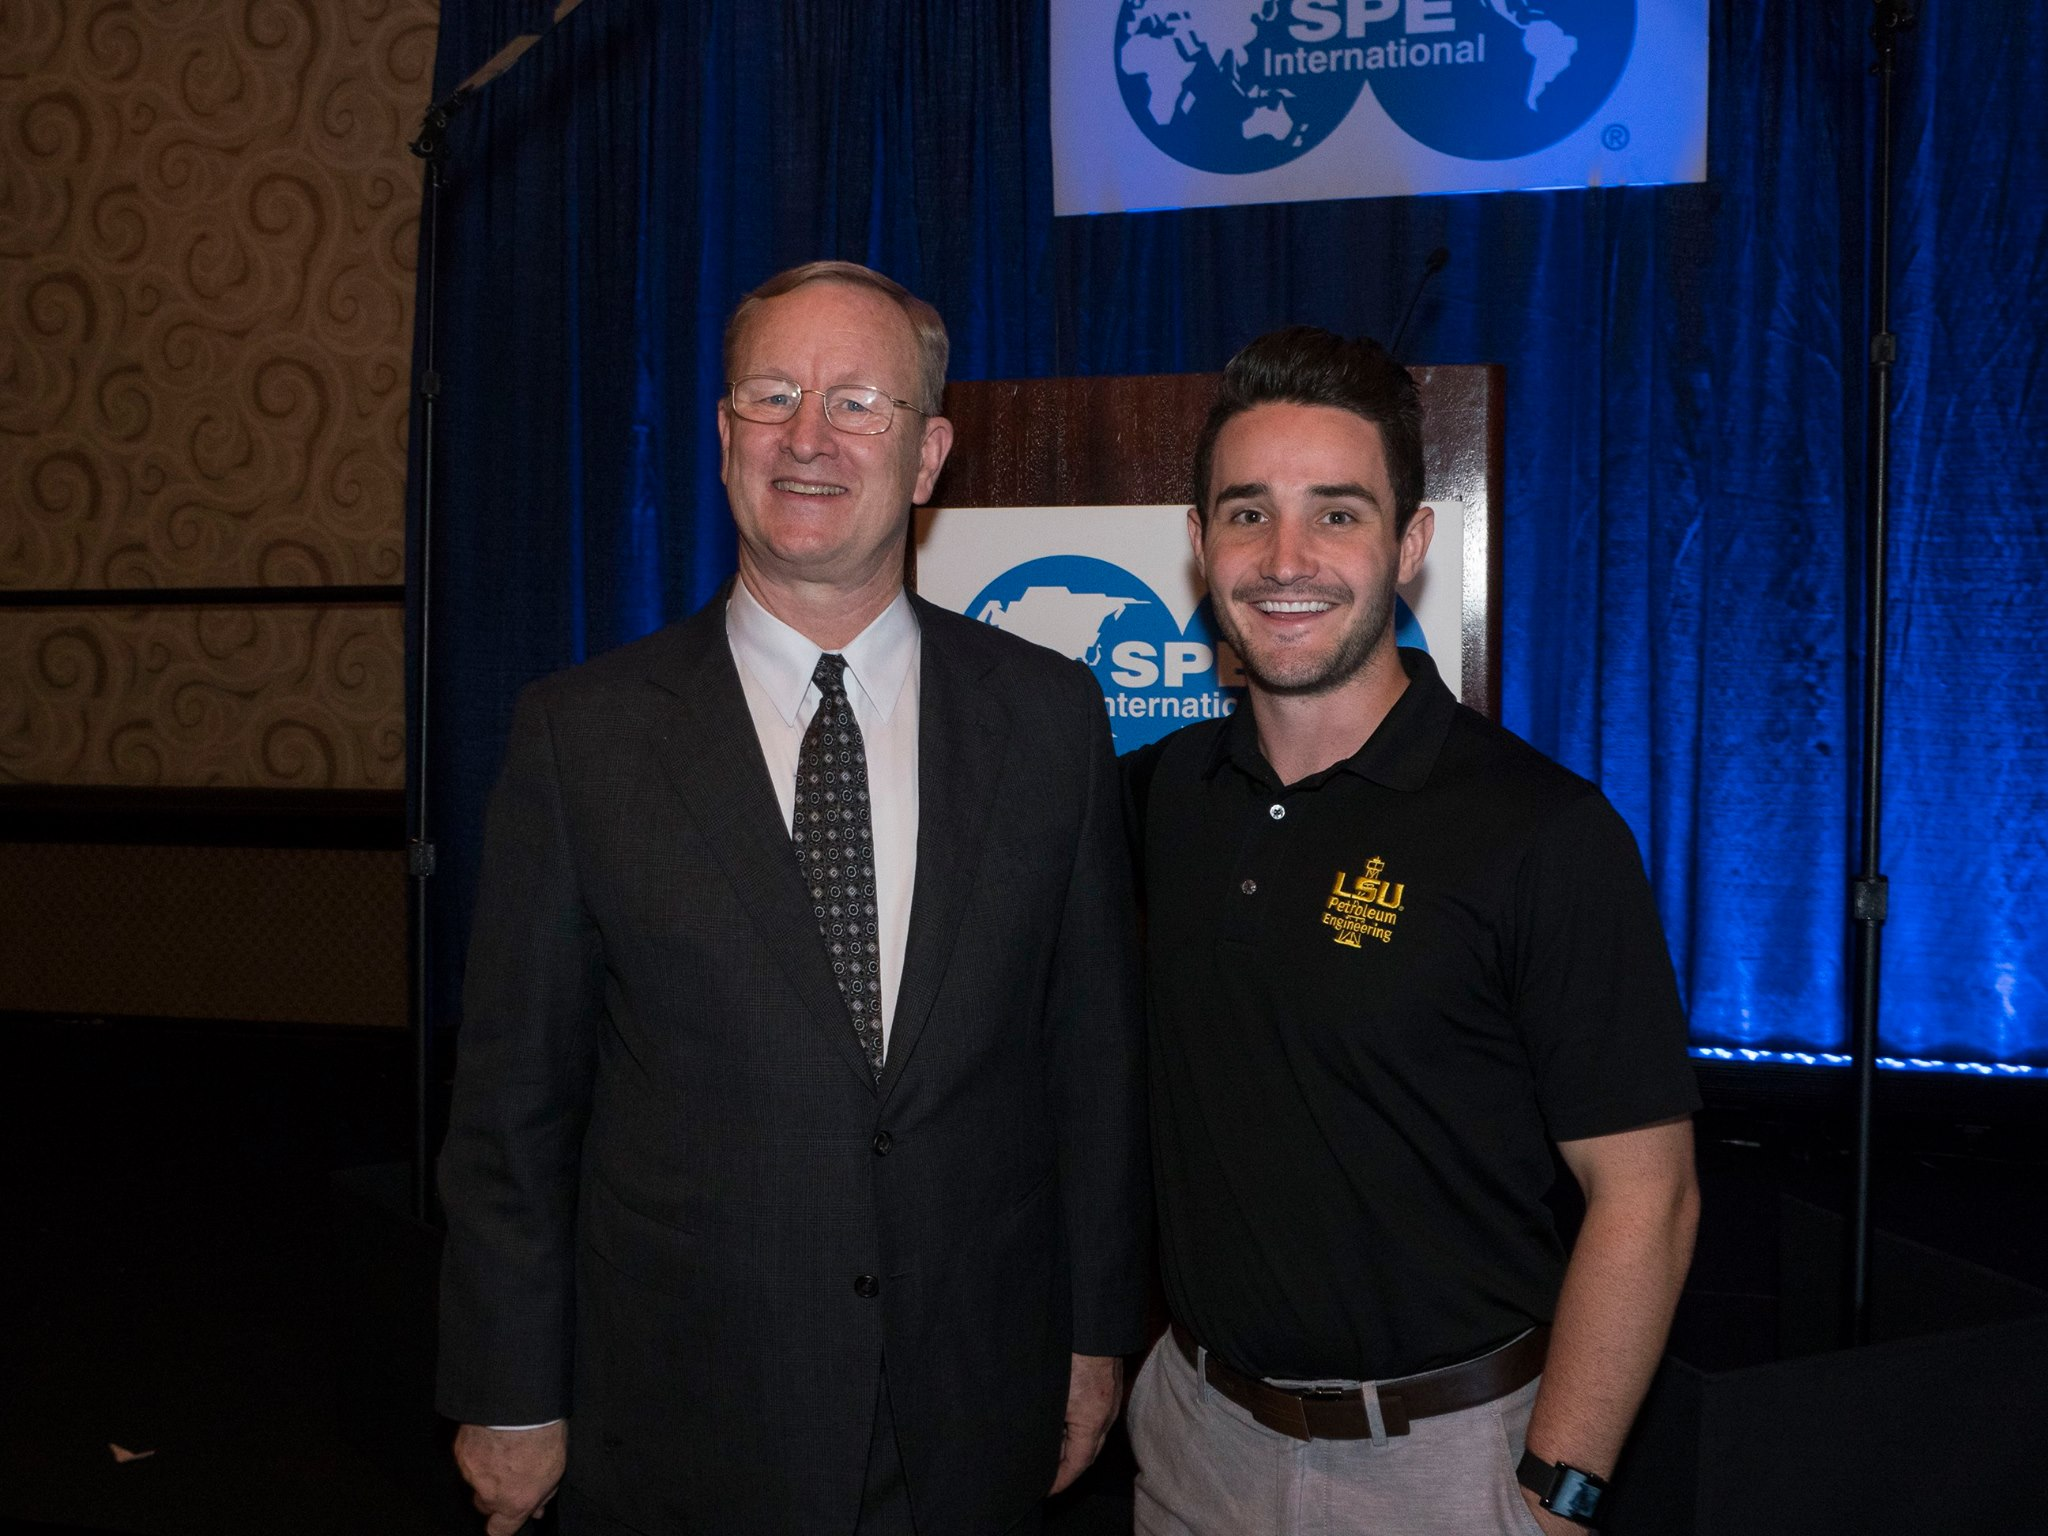 SPEI president Nathan Meehan and SPE LSU president Ty Nielson